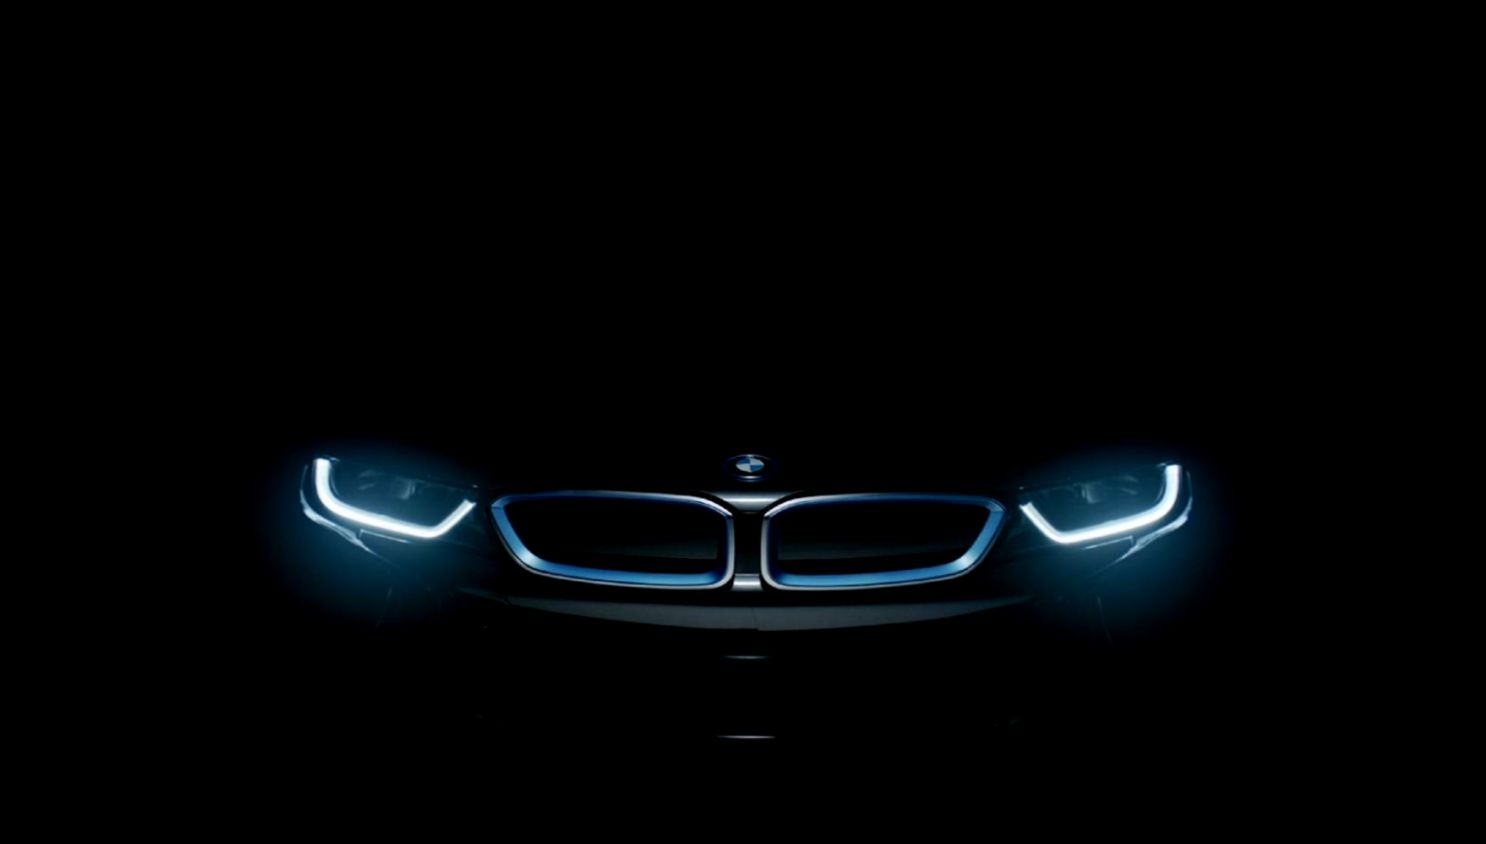 ... BMW Convertible Bmw Images Hd : Bmw Hd Black | Free Best Hd Wallpapers  ...